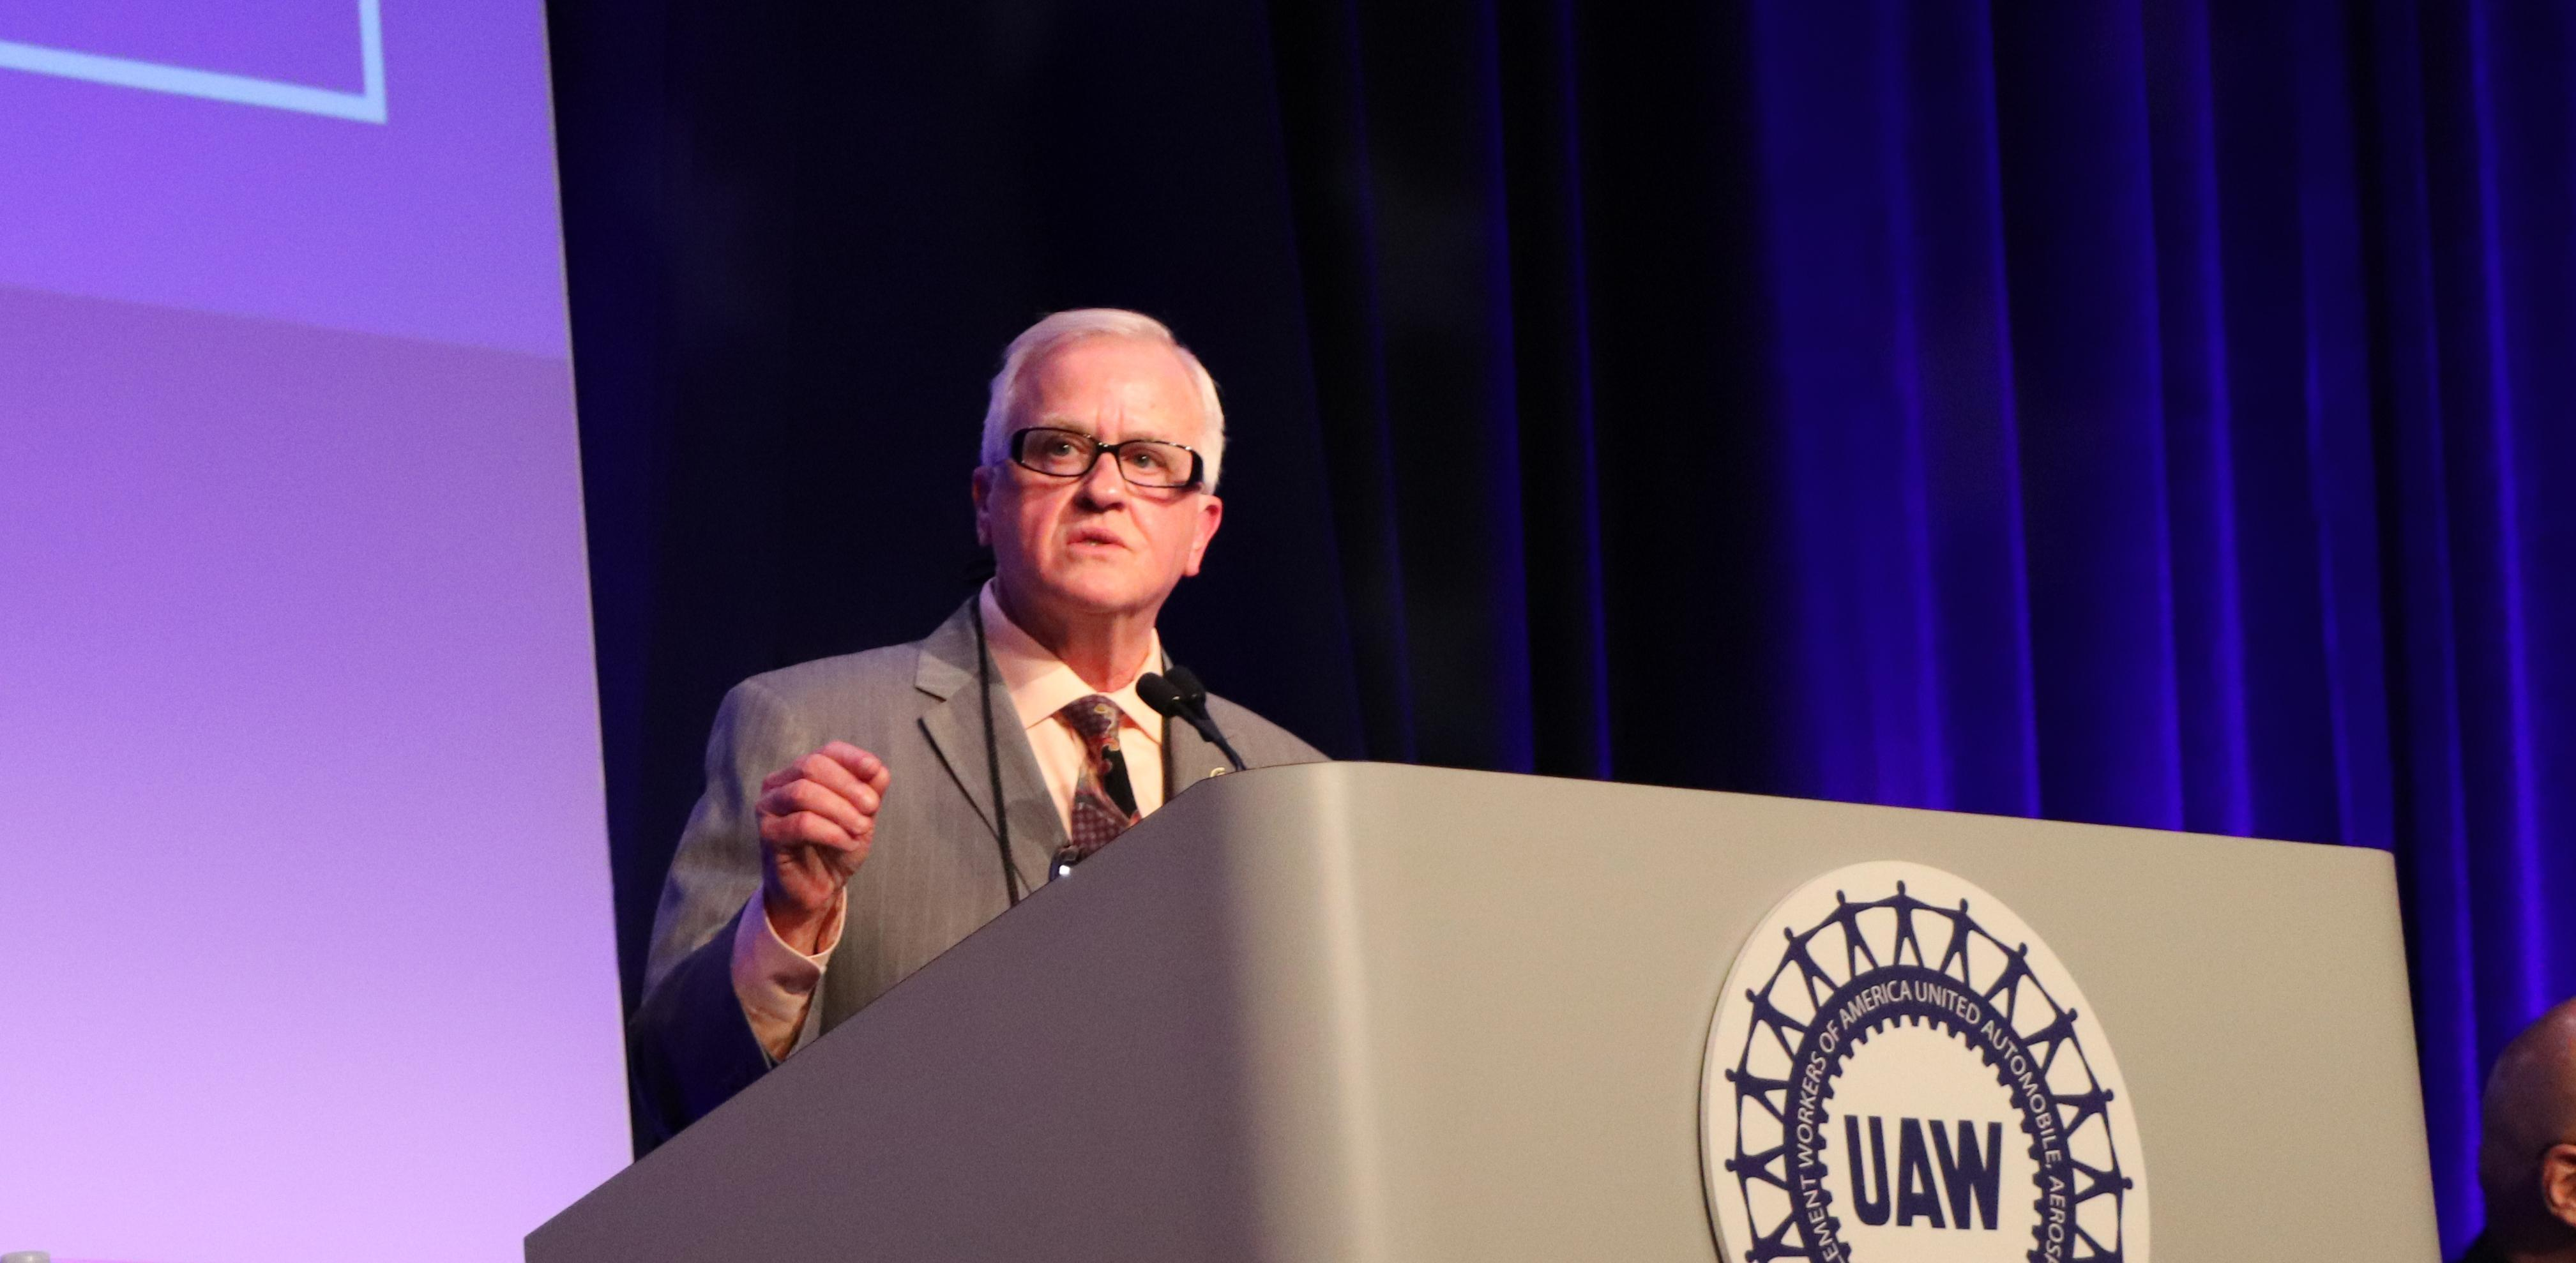 UAW Vice President Terry Dittes